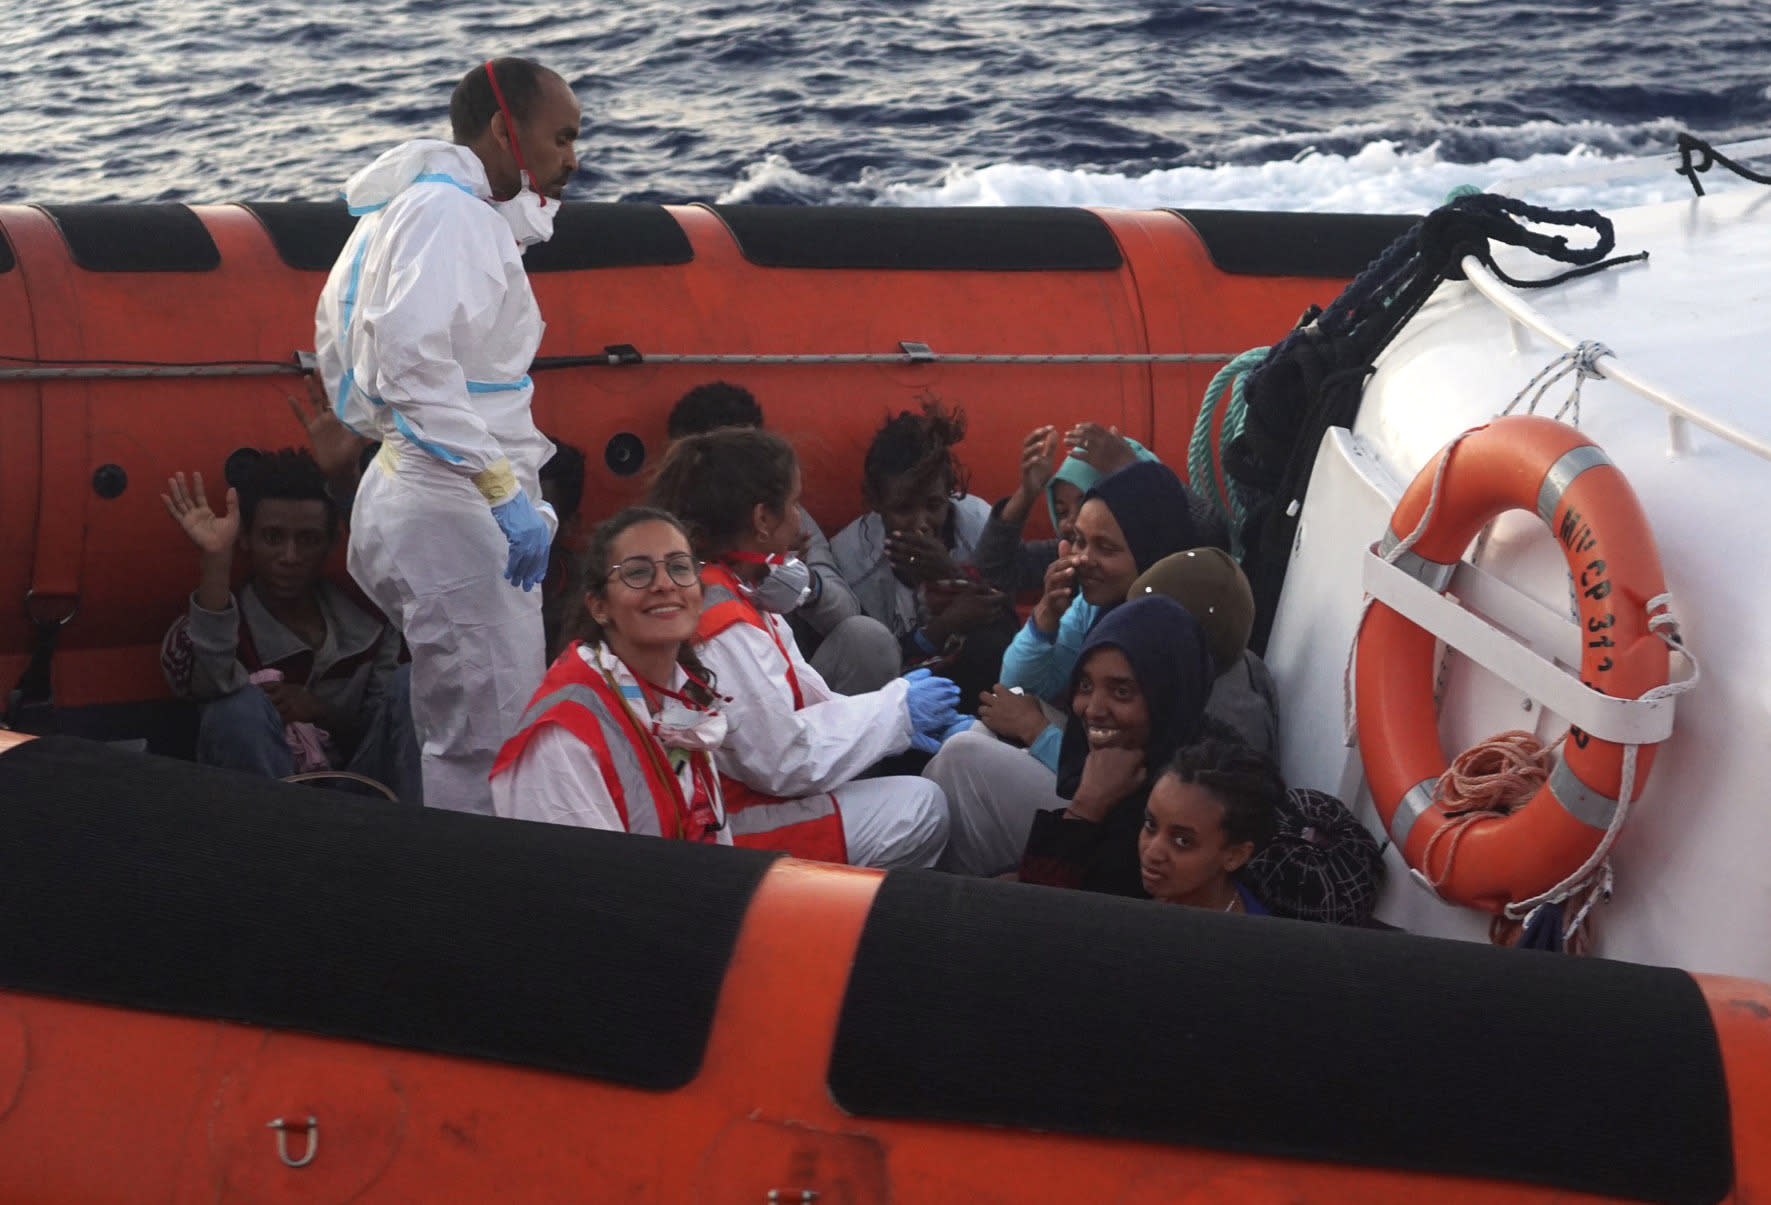 Italian minister allows child migrants to disembark rescue vessel